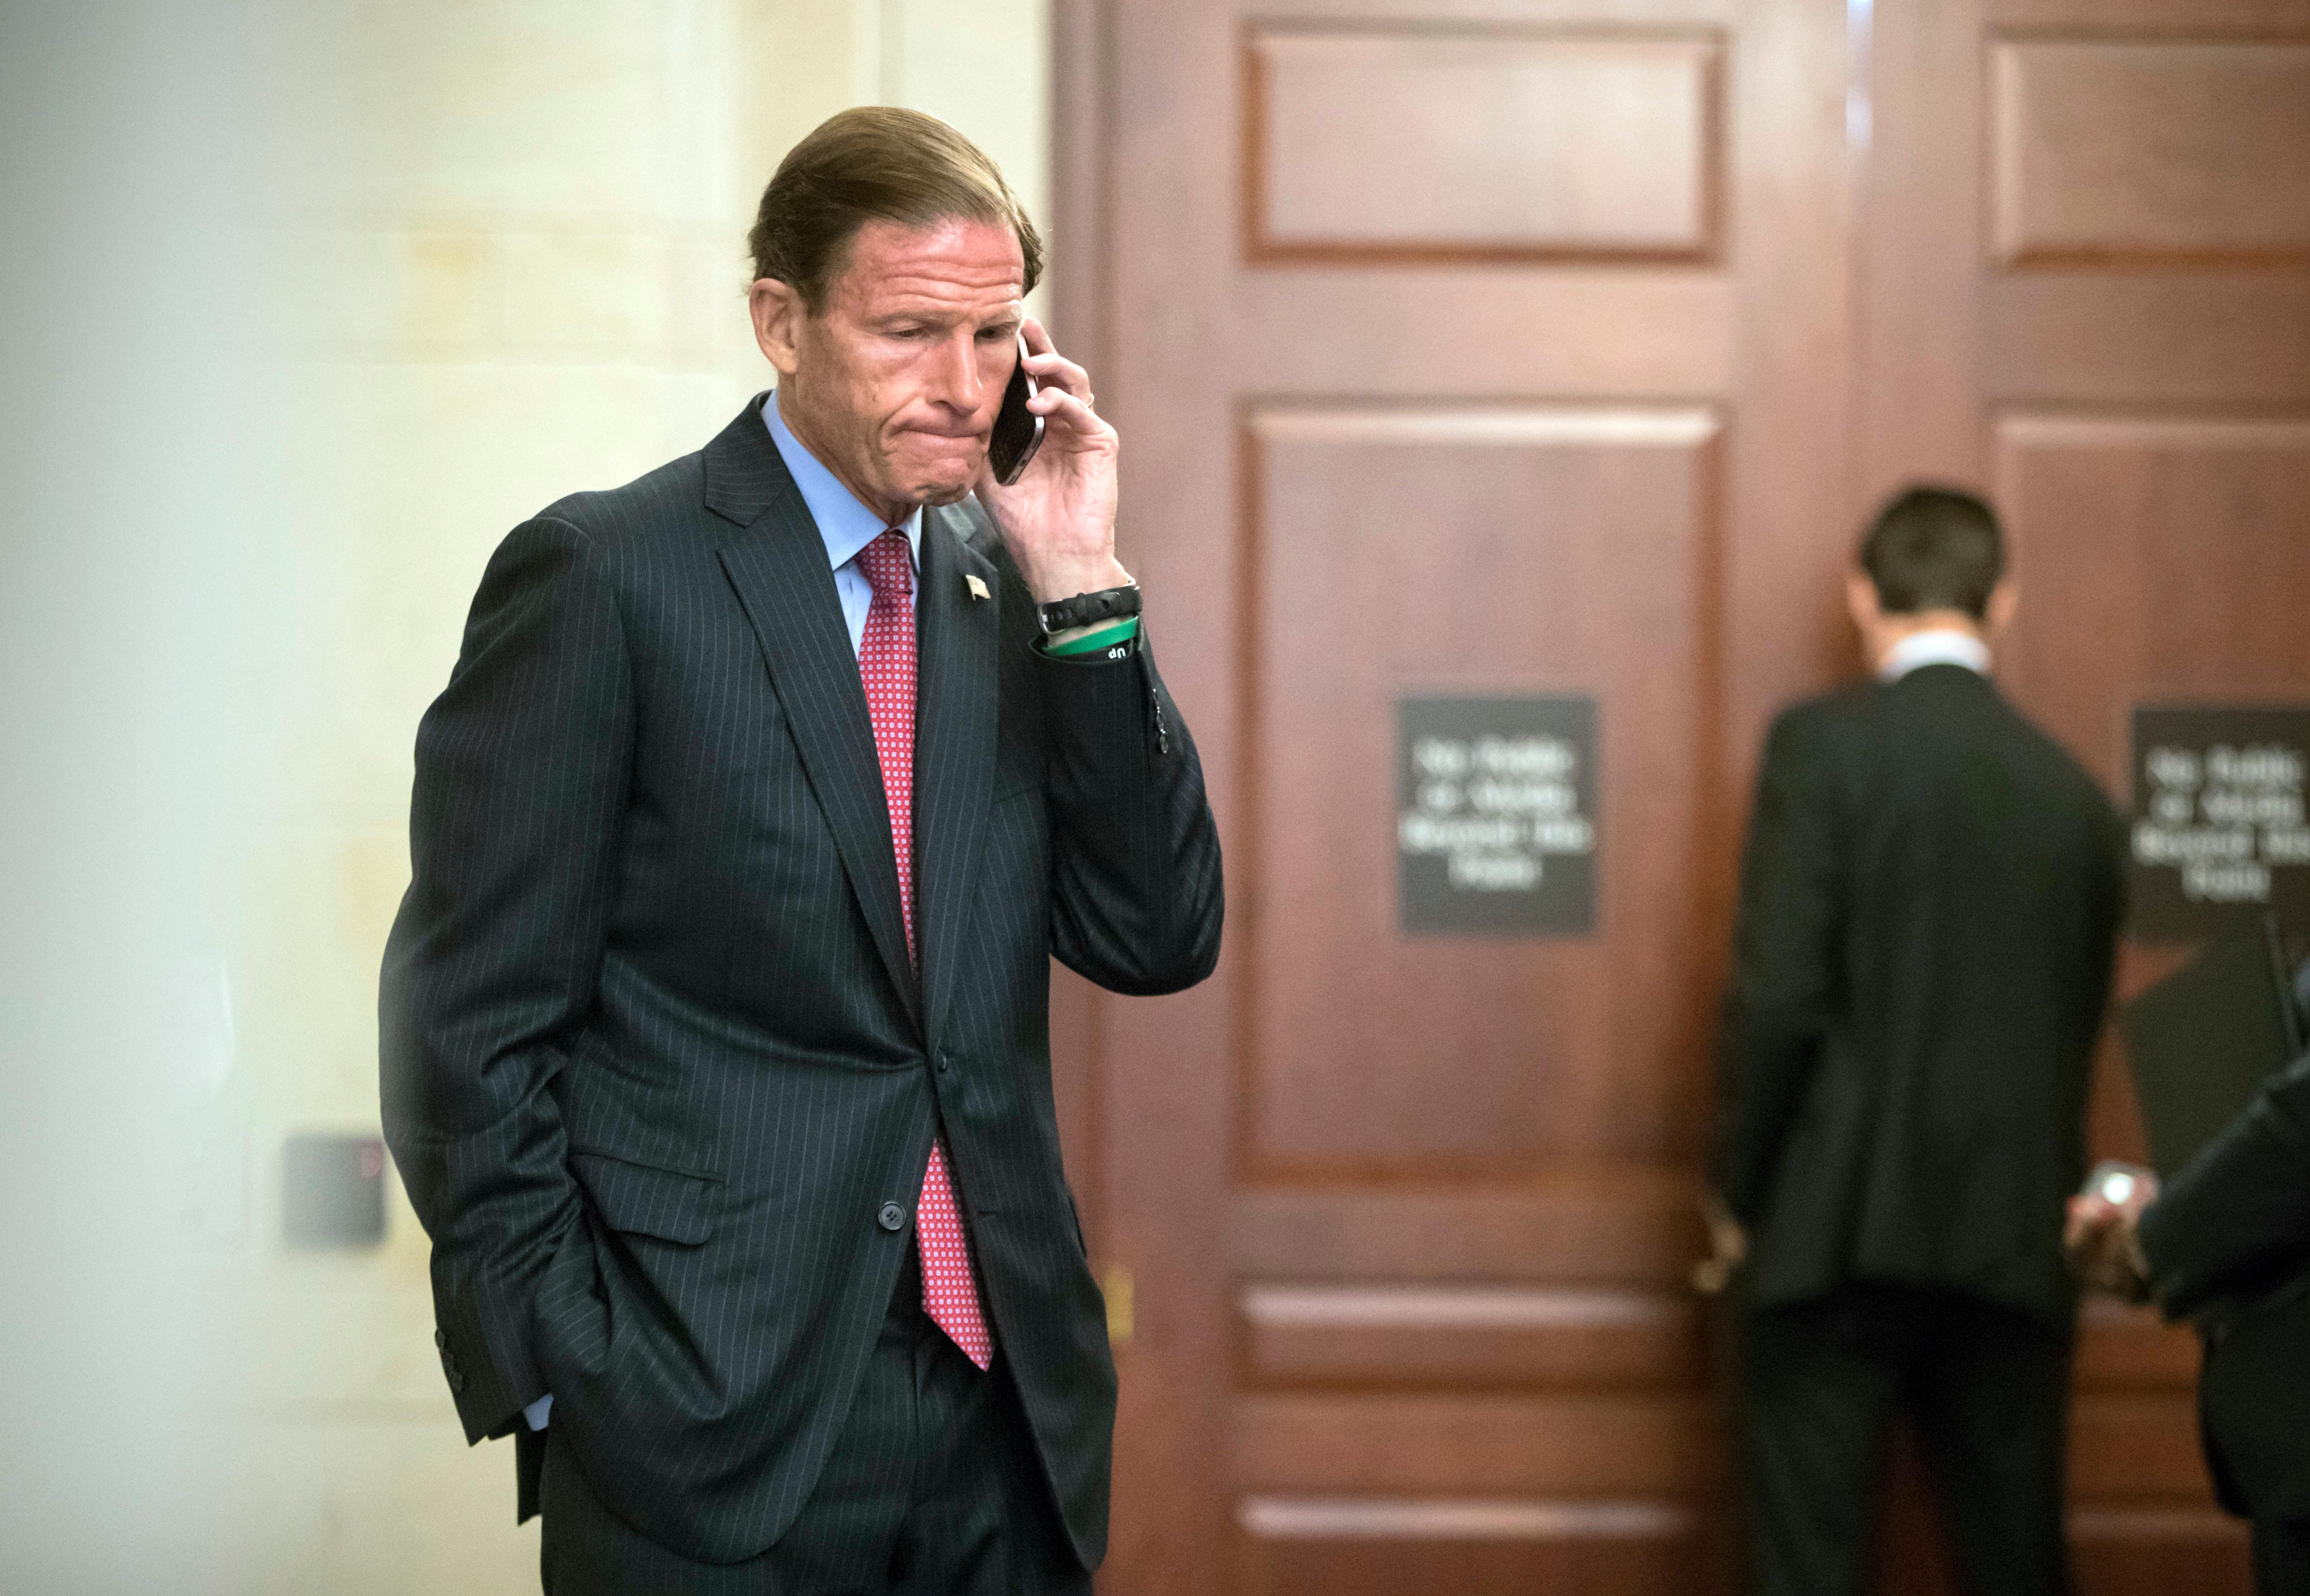 Sen. Richard Blumenthal, D-Conn., a member of the Senate Judiciary Committee, makes a phone call as Donald Trump Jr., interviewed behind closed doors by committee staff investigating the meddling and possible Russian links to President Donald Trump's 2016 presidential campaign, at the Capitol in Washington, Thursday, Sept. 7, 2017.  (AP Photo/J. Scott Applewhite)